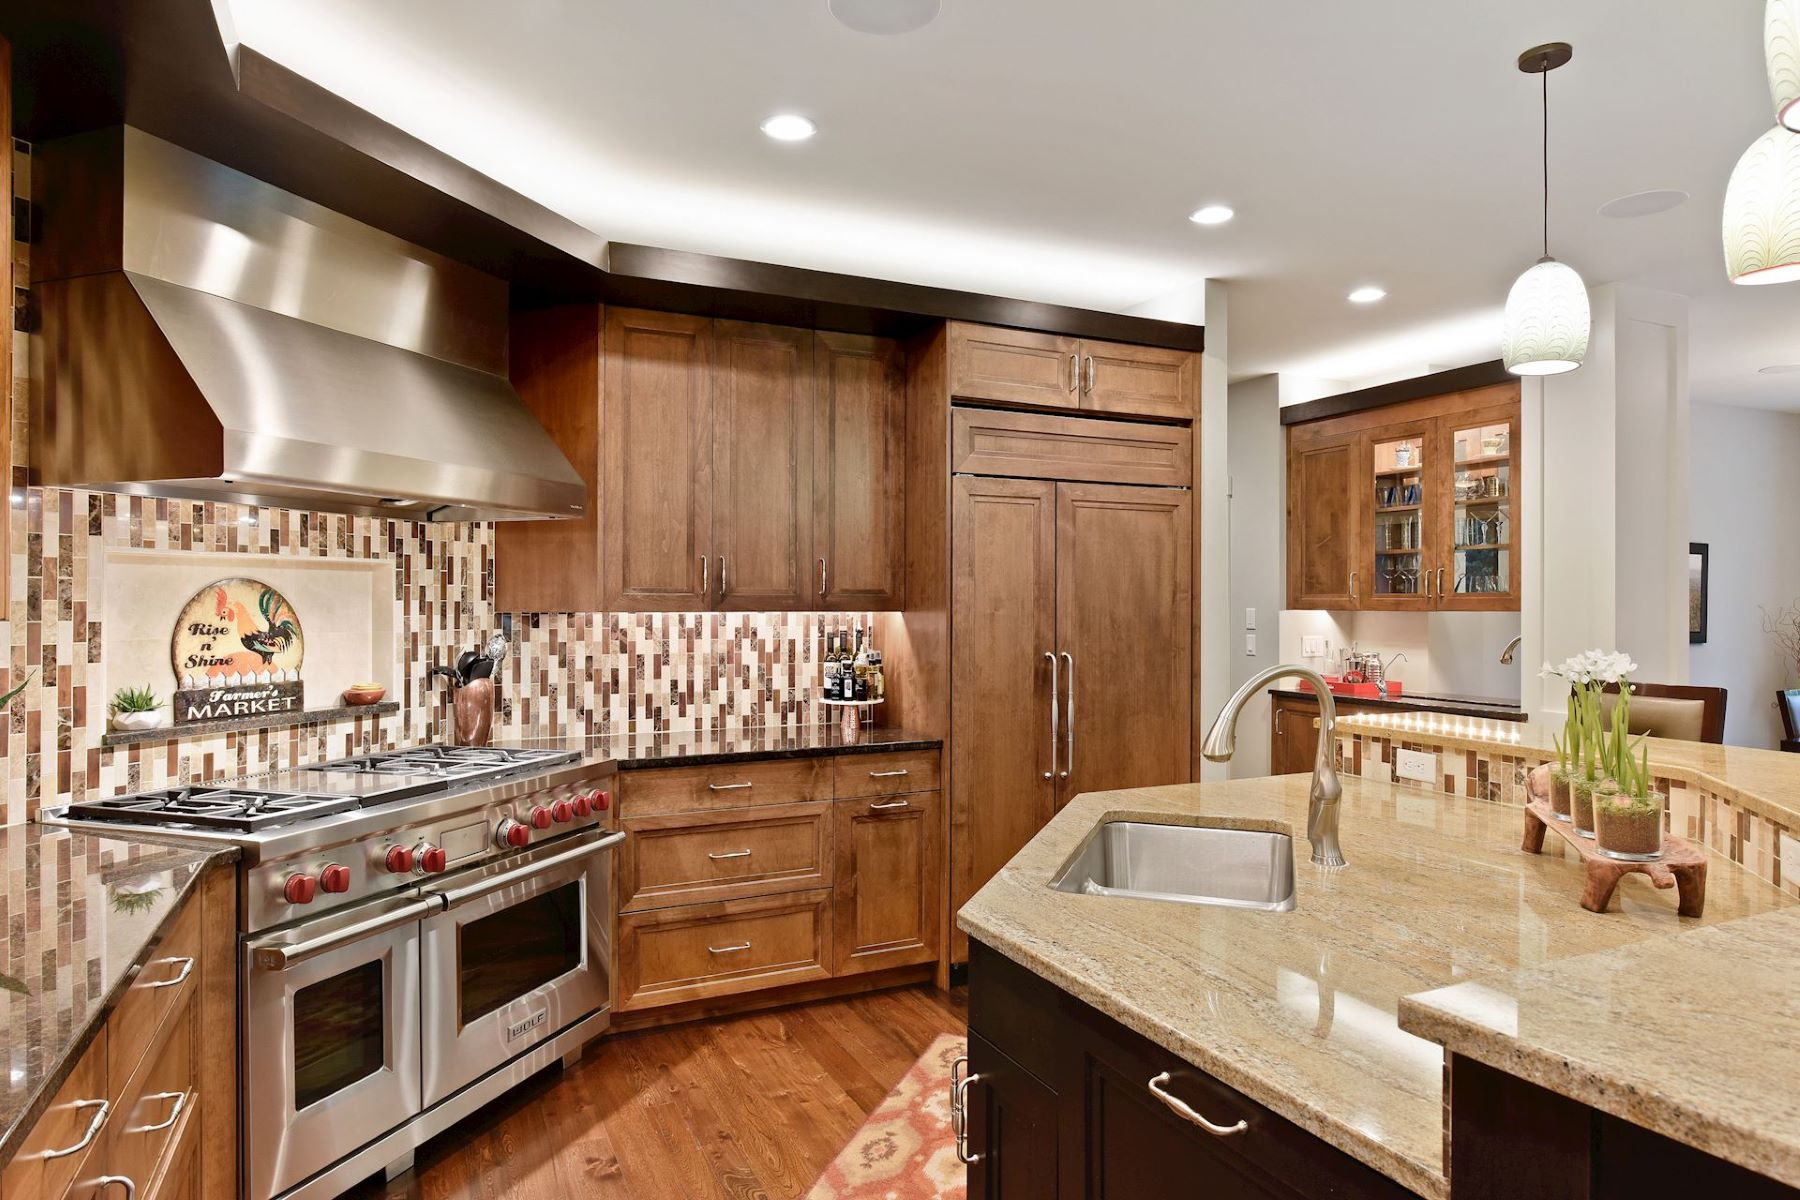 Single Family Homes for Sale at Incredible Two Story Home in Wayzata's Premier Location 207 Manitoba Avenue Wayzata, Minnesota 55391 United States